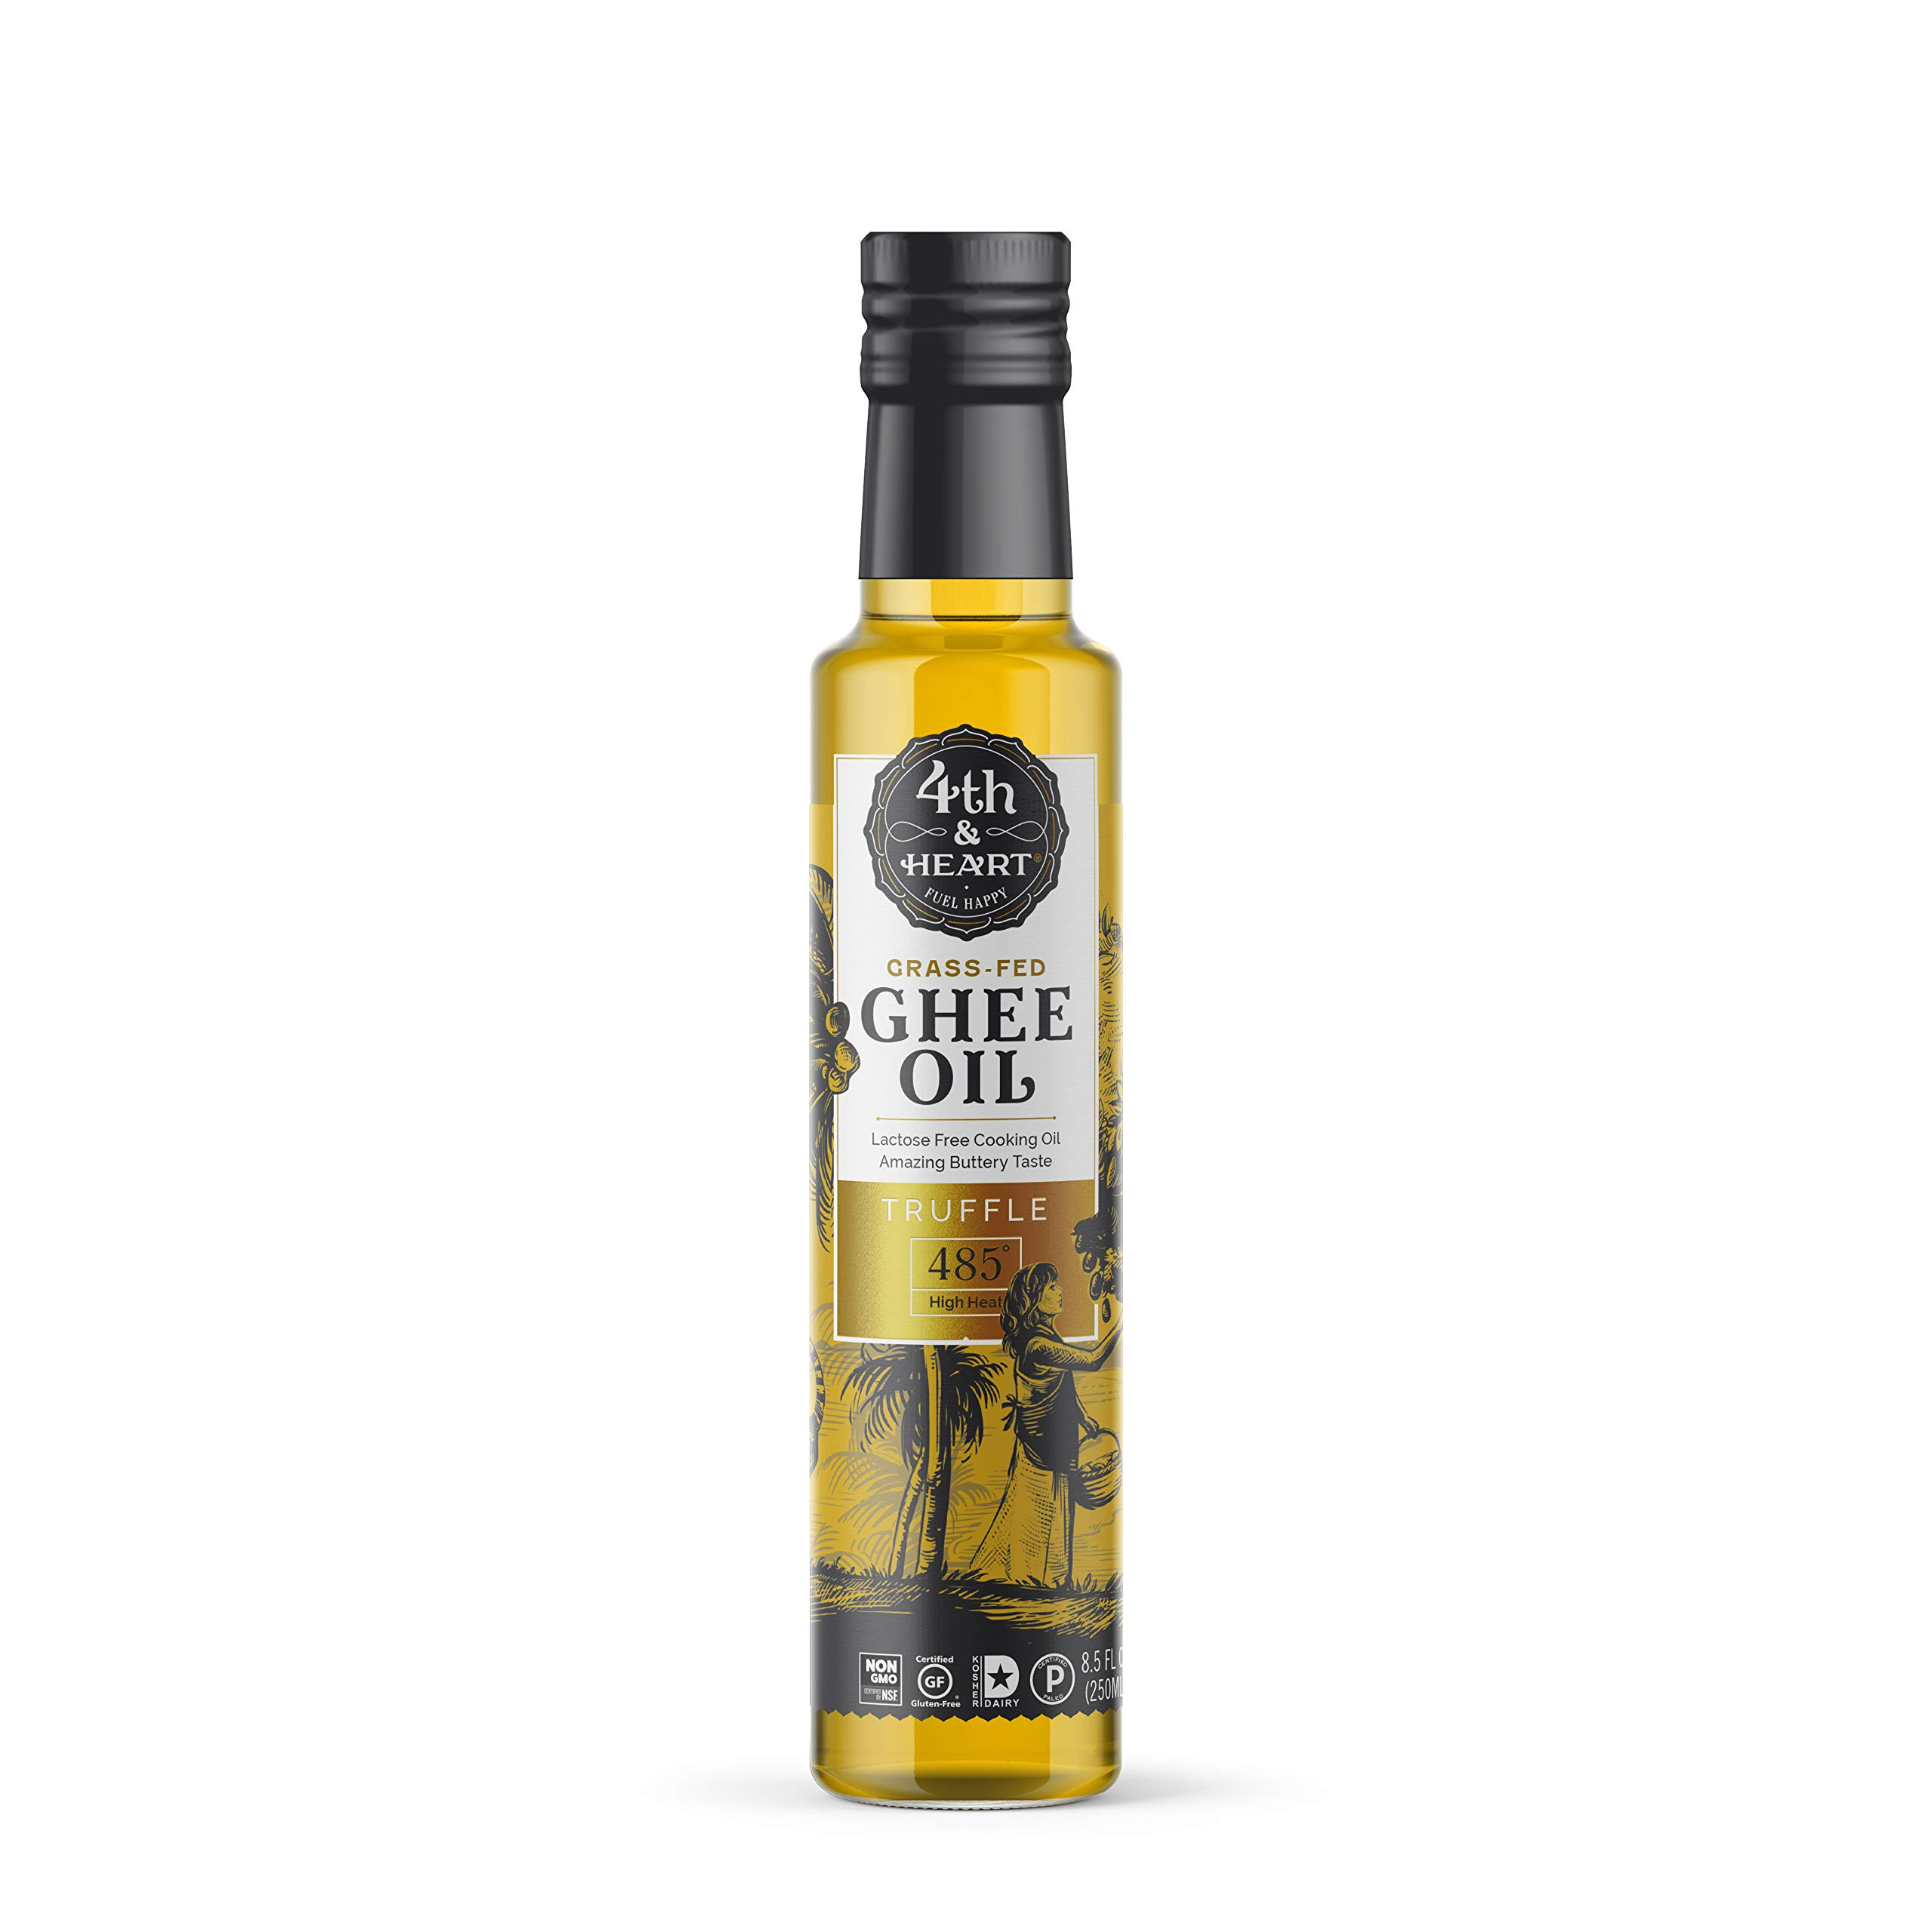 Truffle Grass-Fed Pourable Ghee Oil by 4th & Heart, High Heat, Non-GMO Verified Hybrid Oil, Certified Paleo and Keto, Lactose Free, 8.5 ounces by 4th & Heart